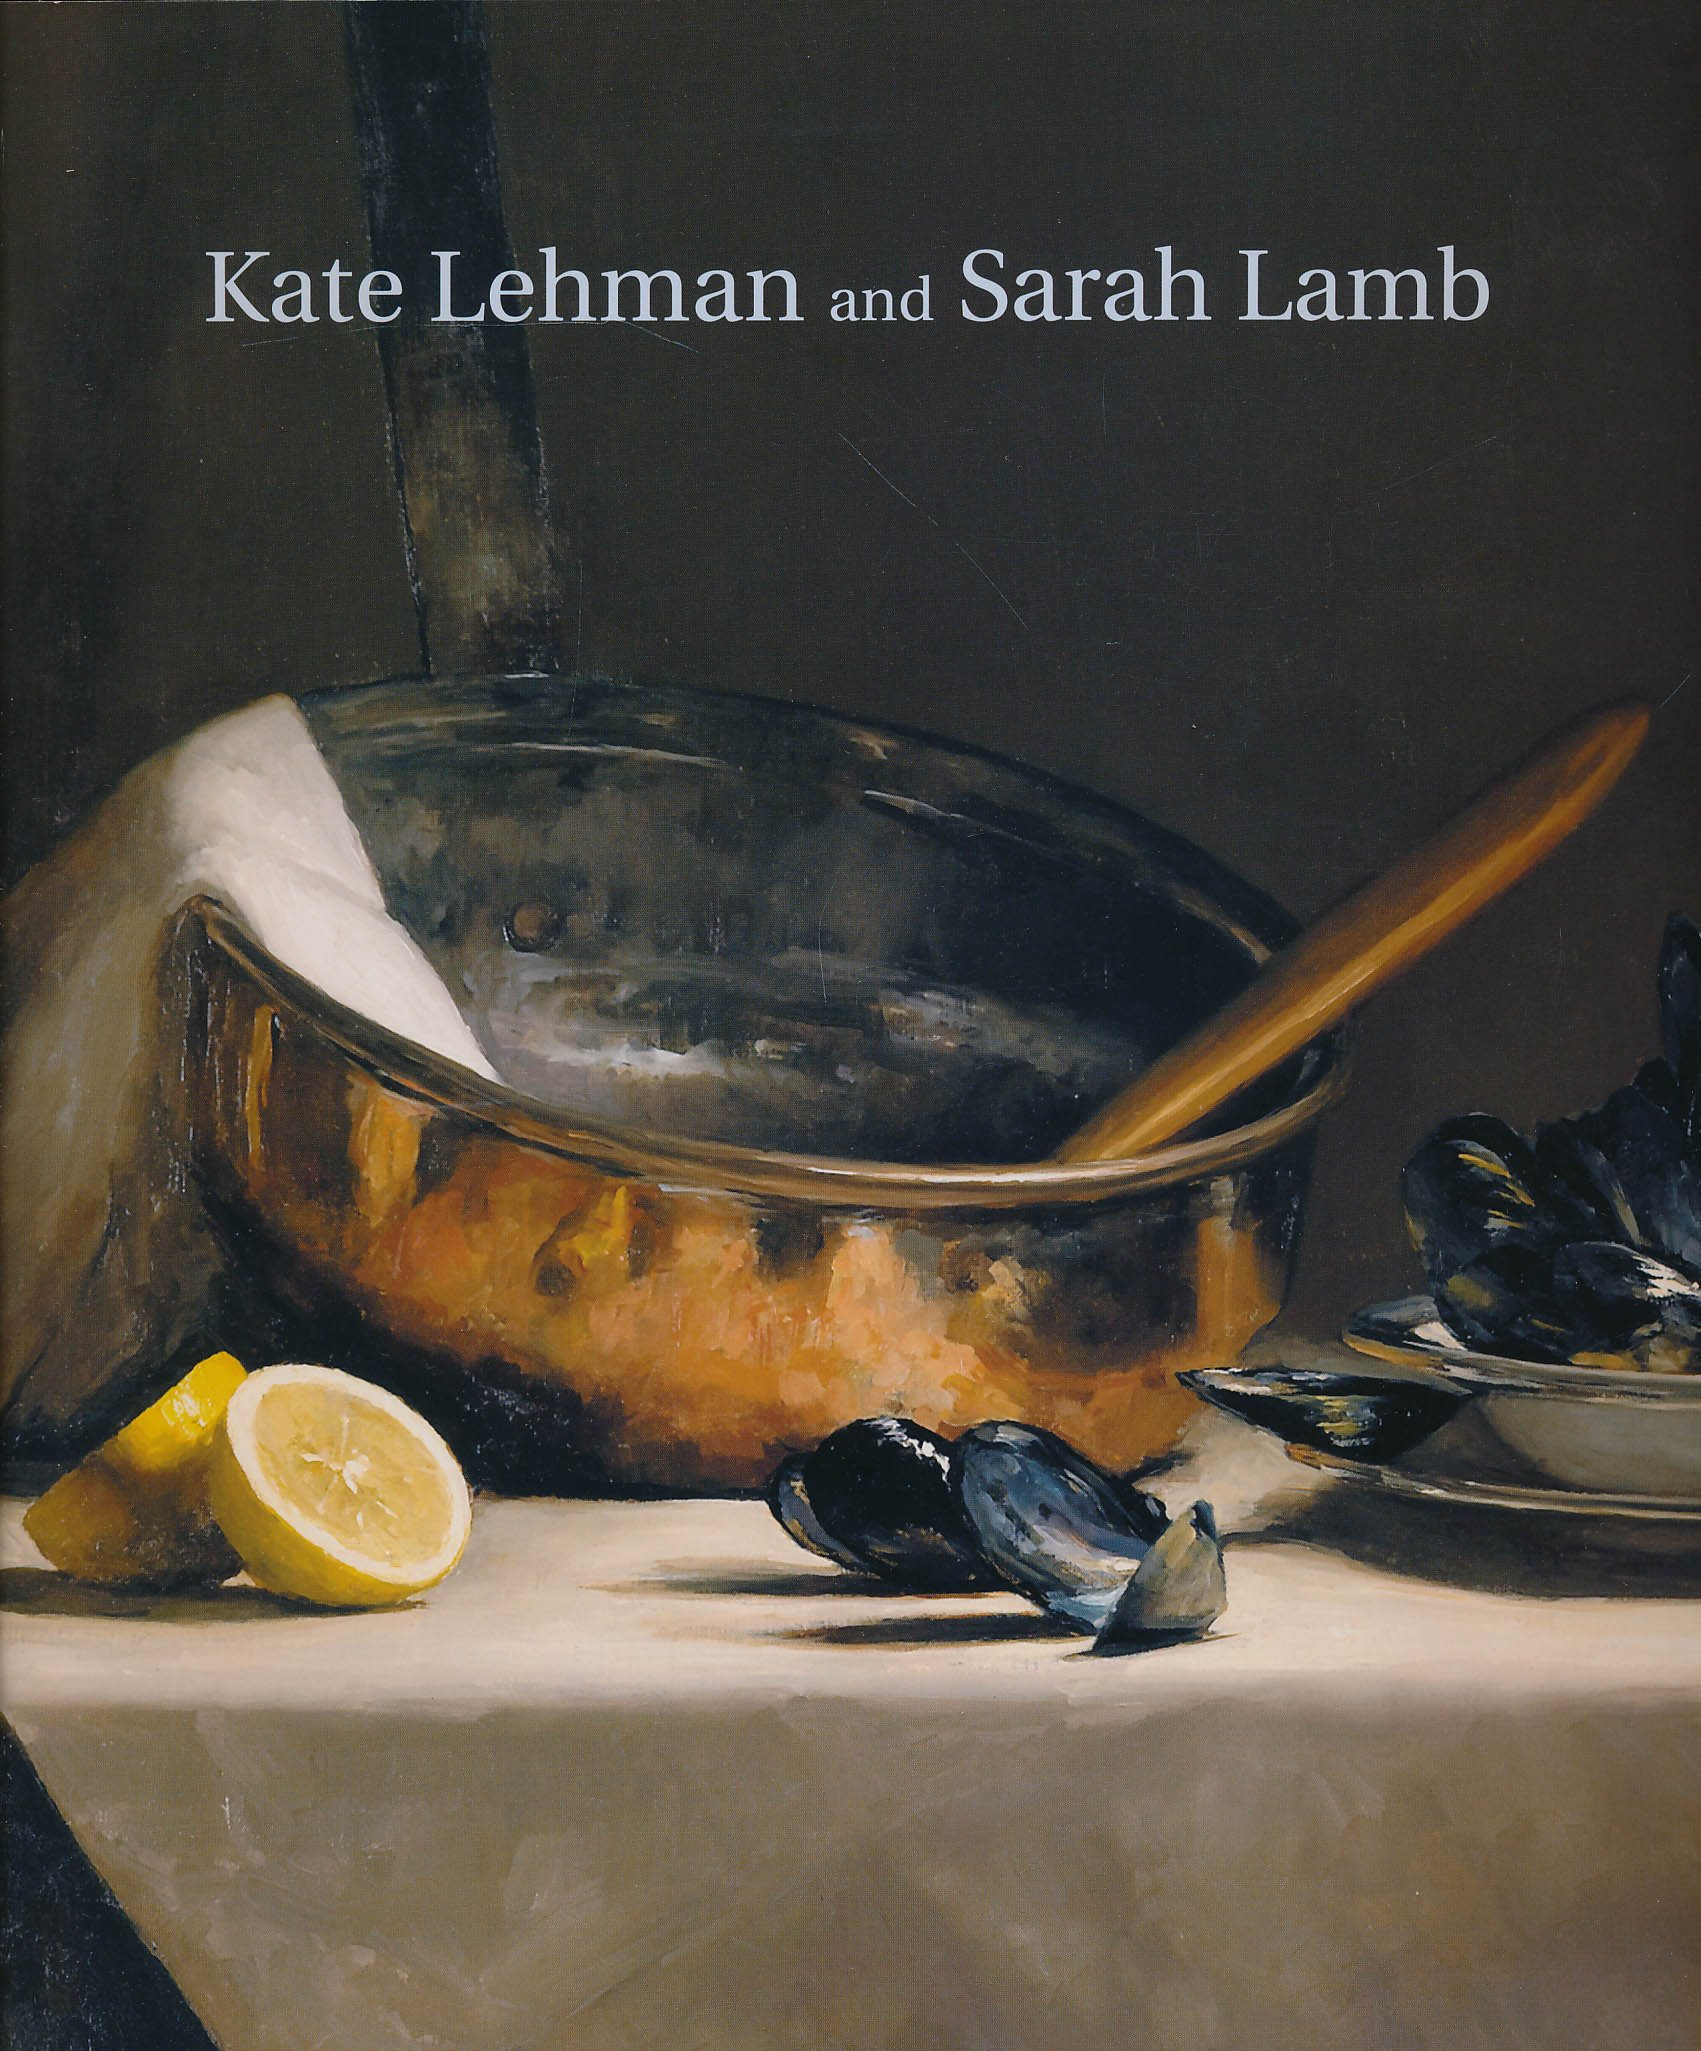 Read Online Recent Paintings By Kate Lehman And Sarah Lamb, March 1- April 1, 2006 PDF